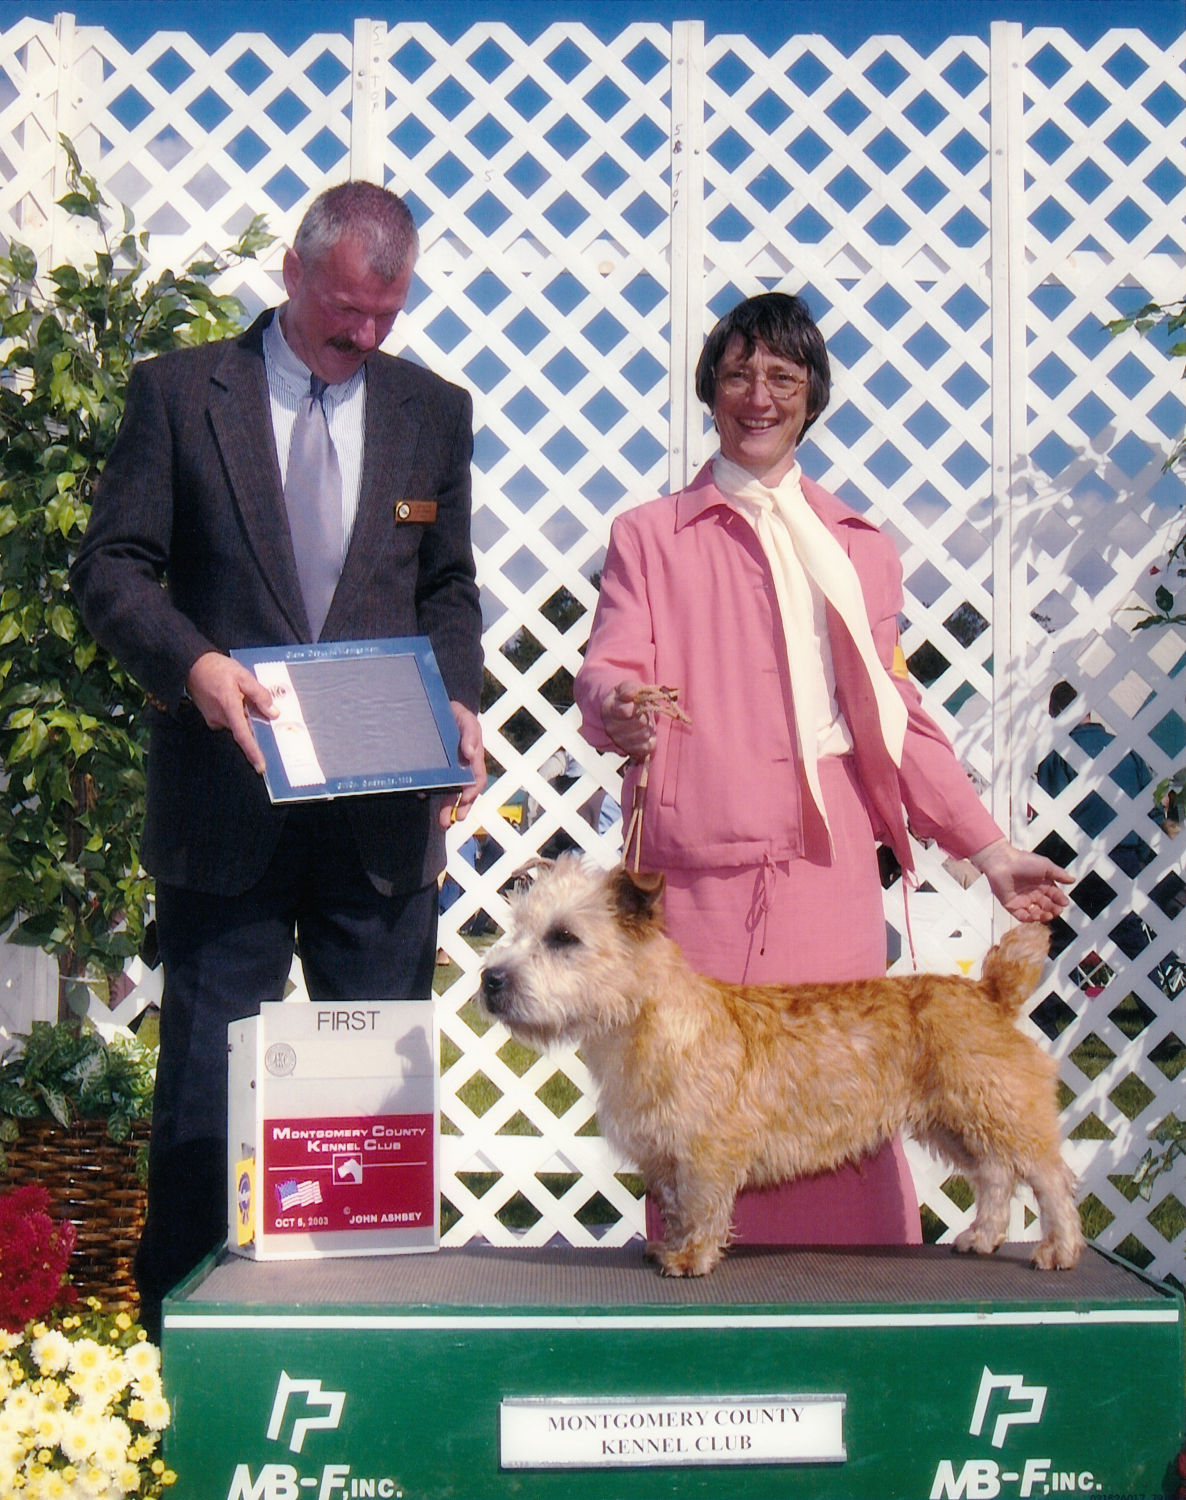 Glen of Imaal Terrier, Scoobie wins Best Miscellaneous Dog in a field of 12 dogs, at 10.5 months